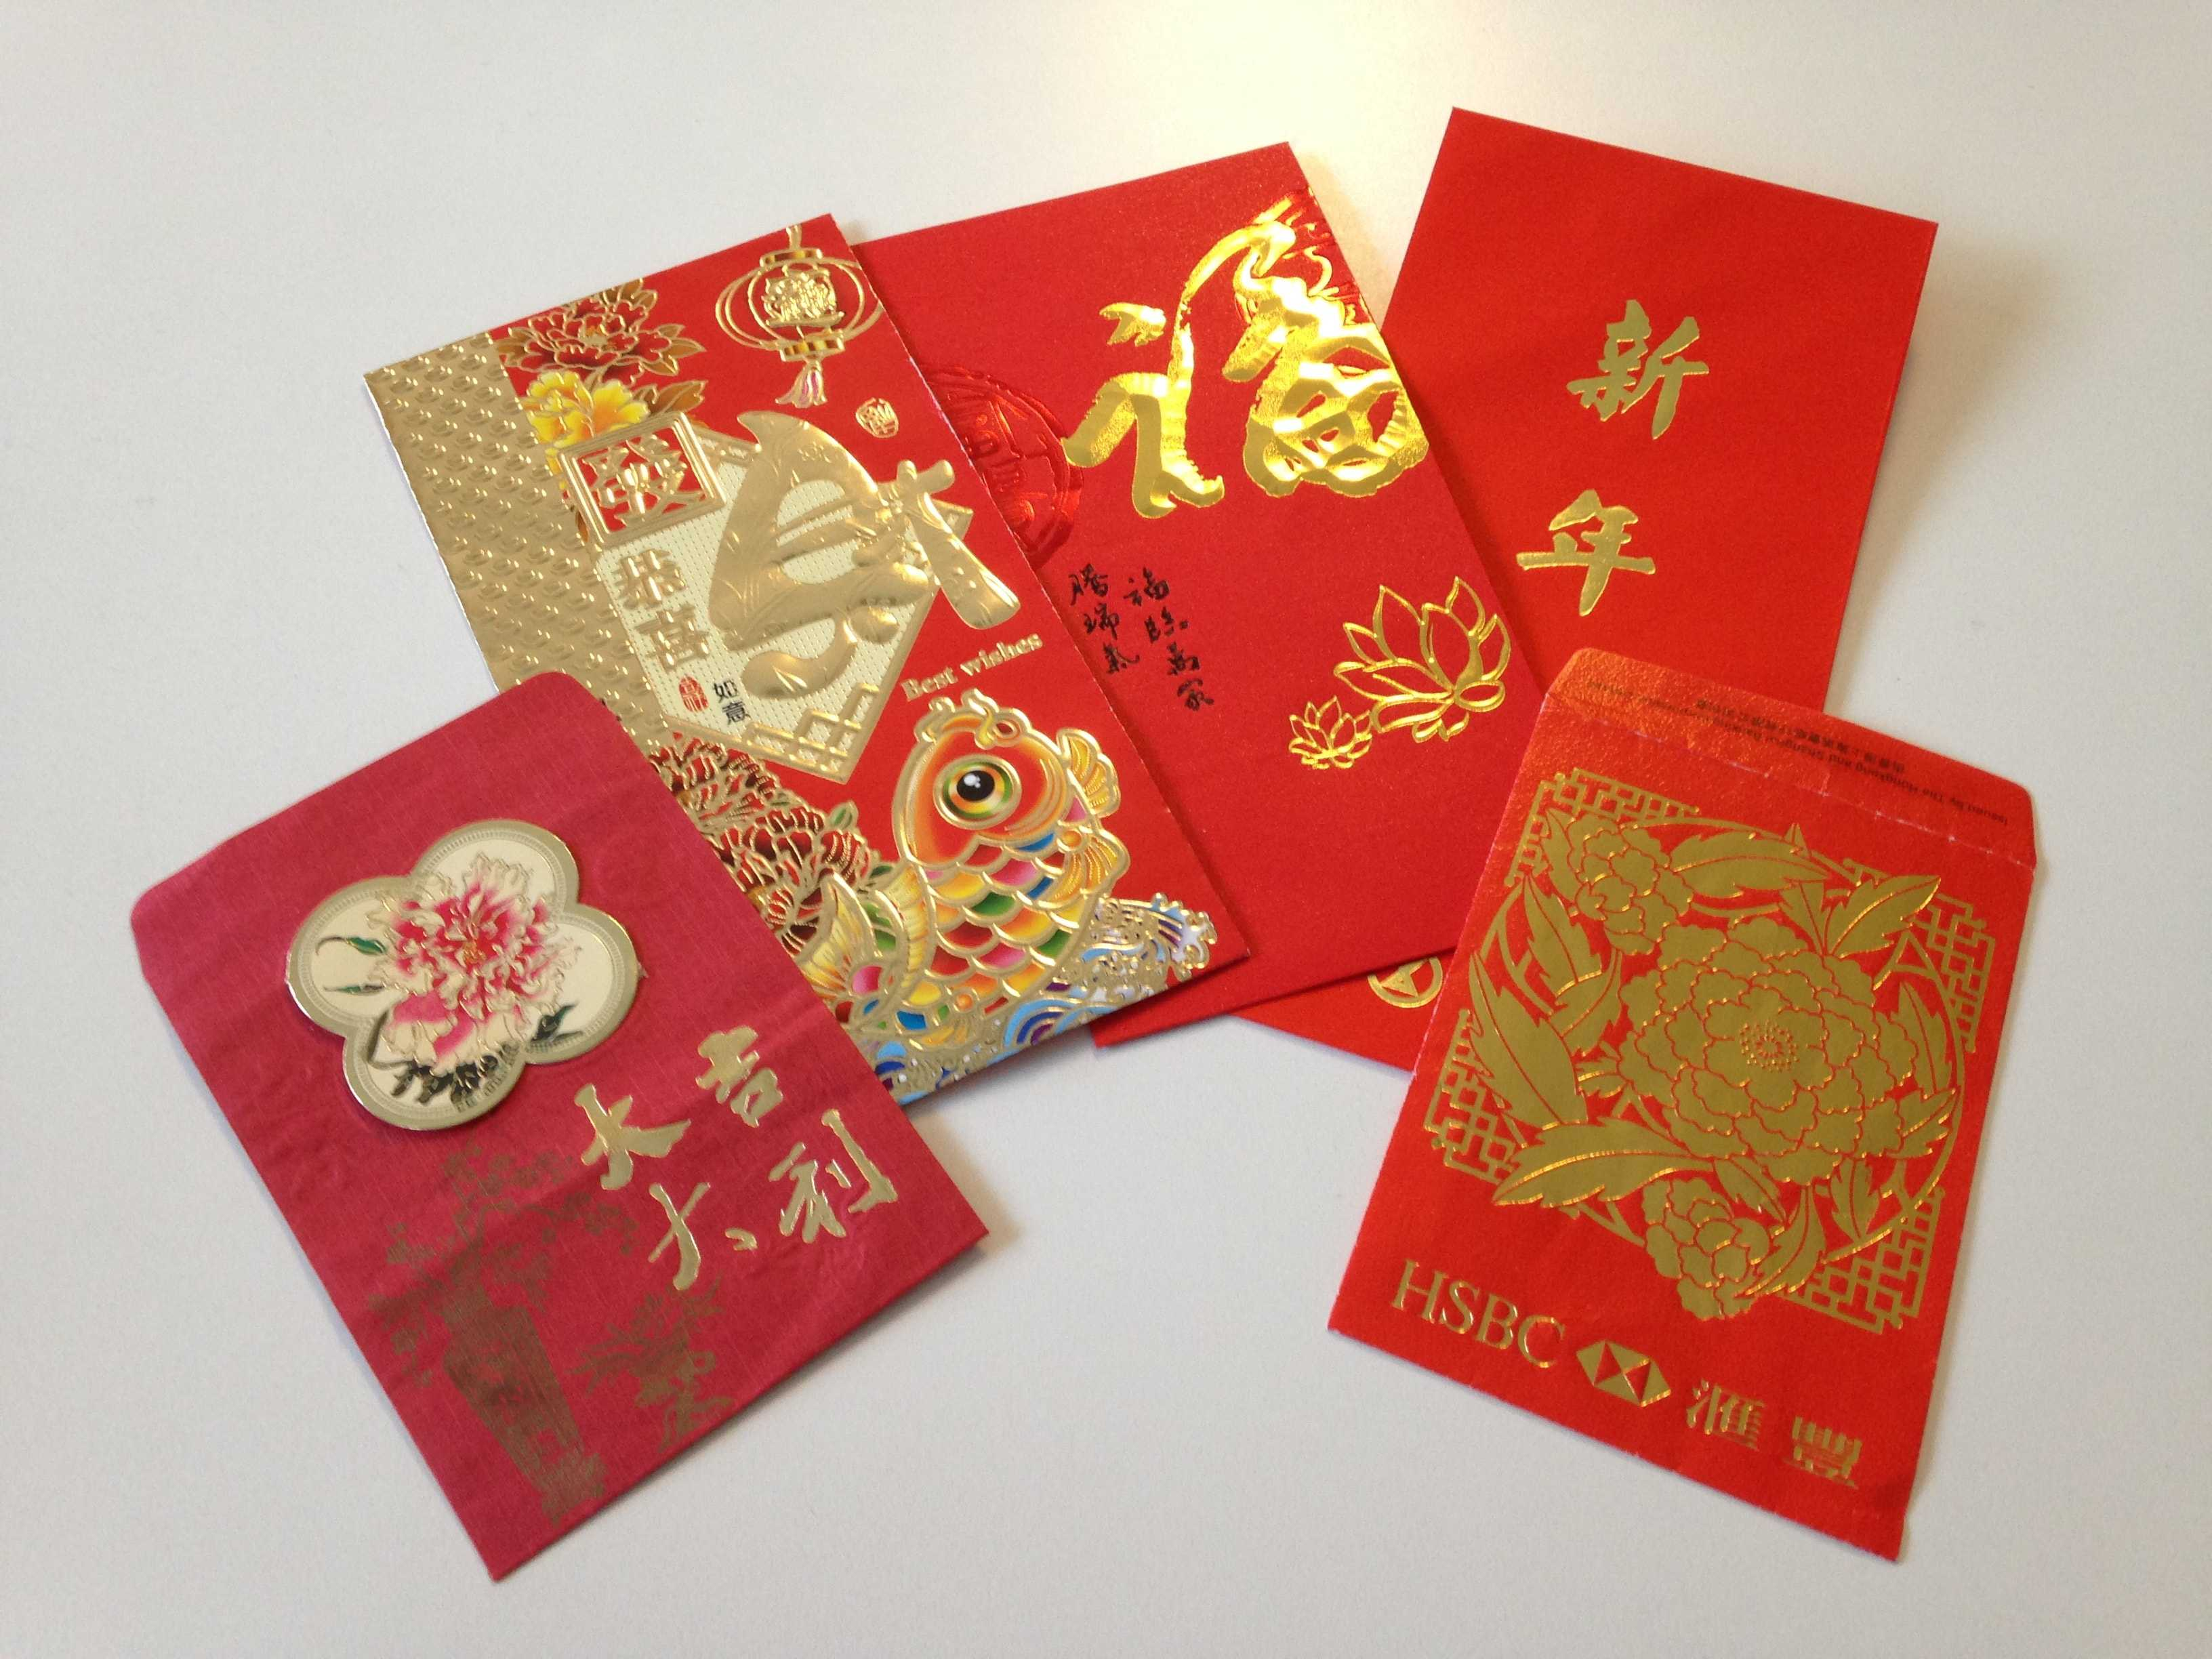 Children traditionally receive red envelopes on New Year's, containing various amounts of money.